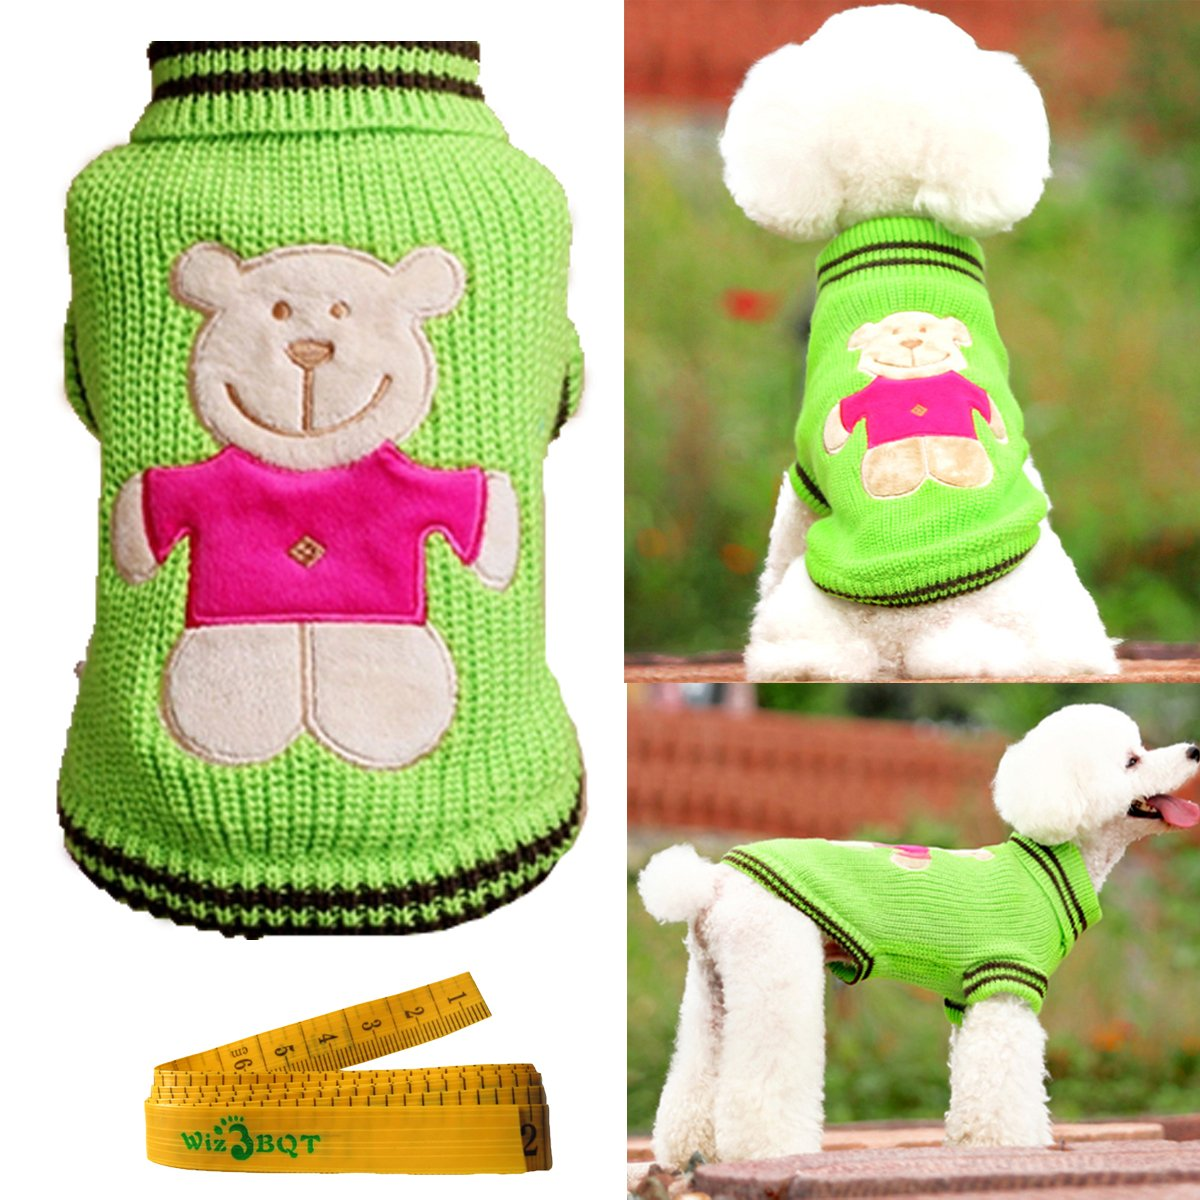 Cute Pet Sweater Knitted Turtleneck Knitwear Outwear for Dogs & Cats (Green, Large)